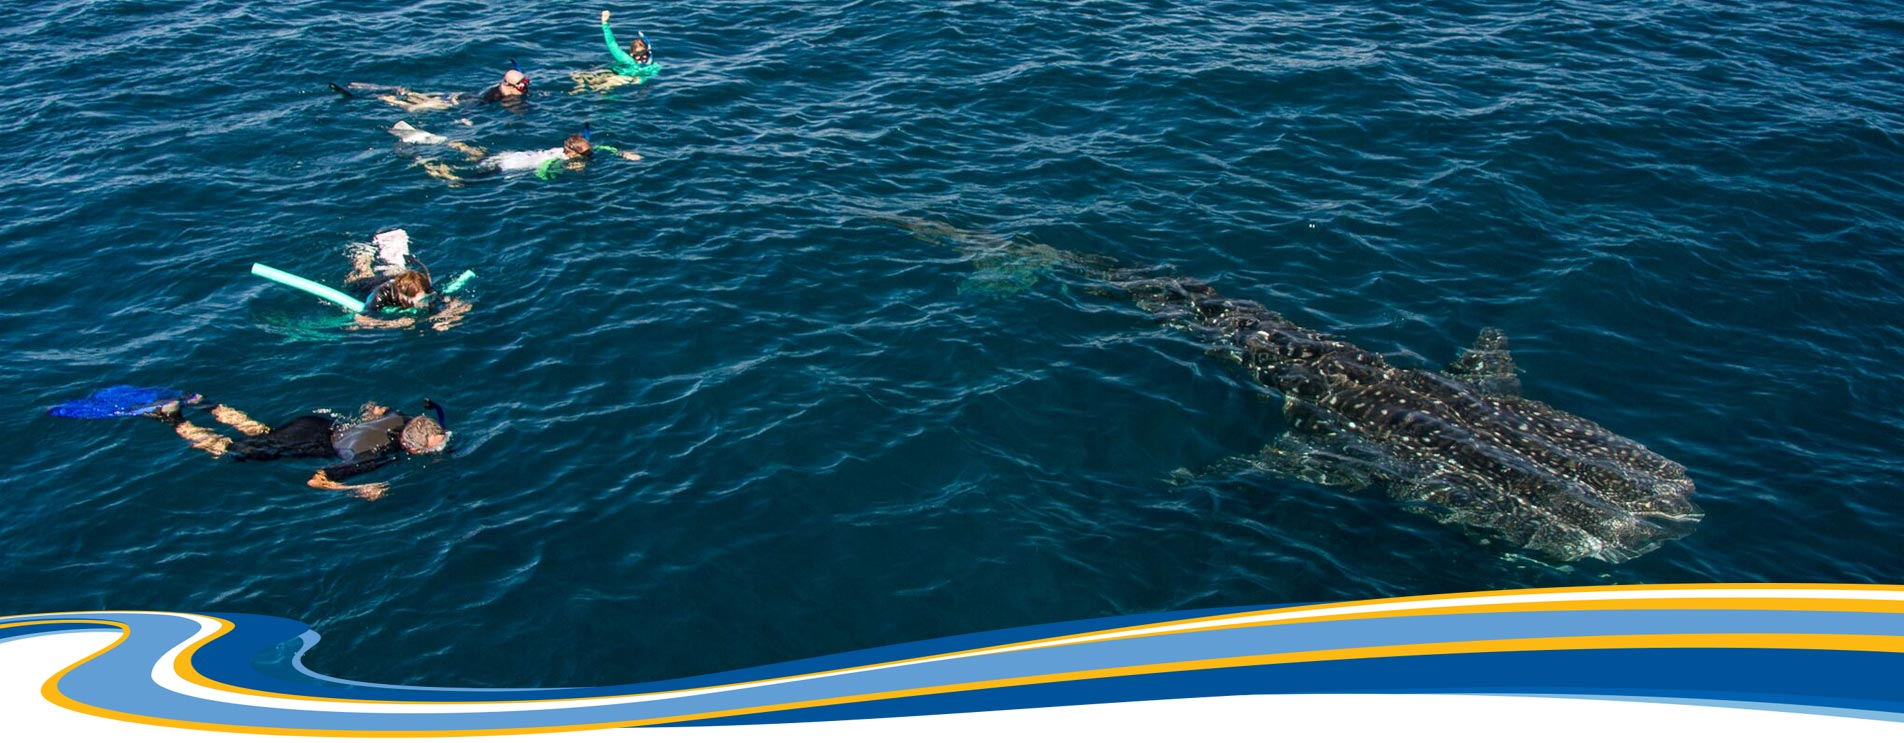 swim with a whale shark in exmouth